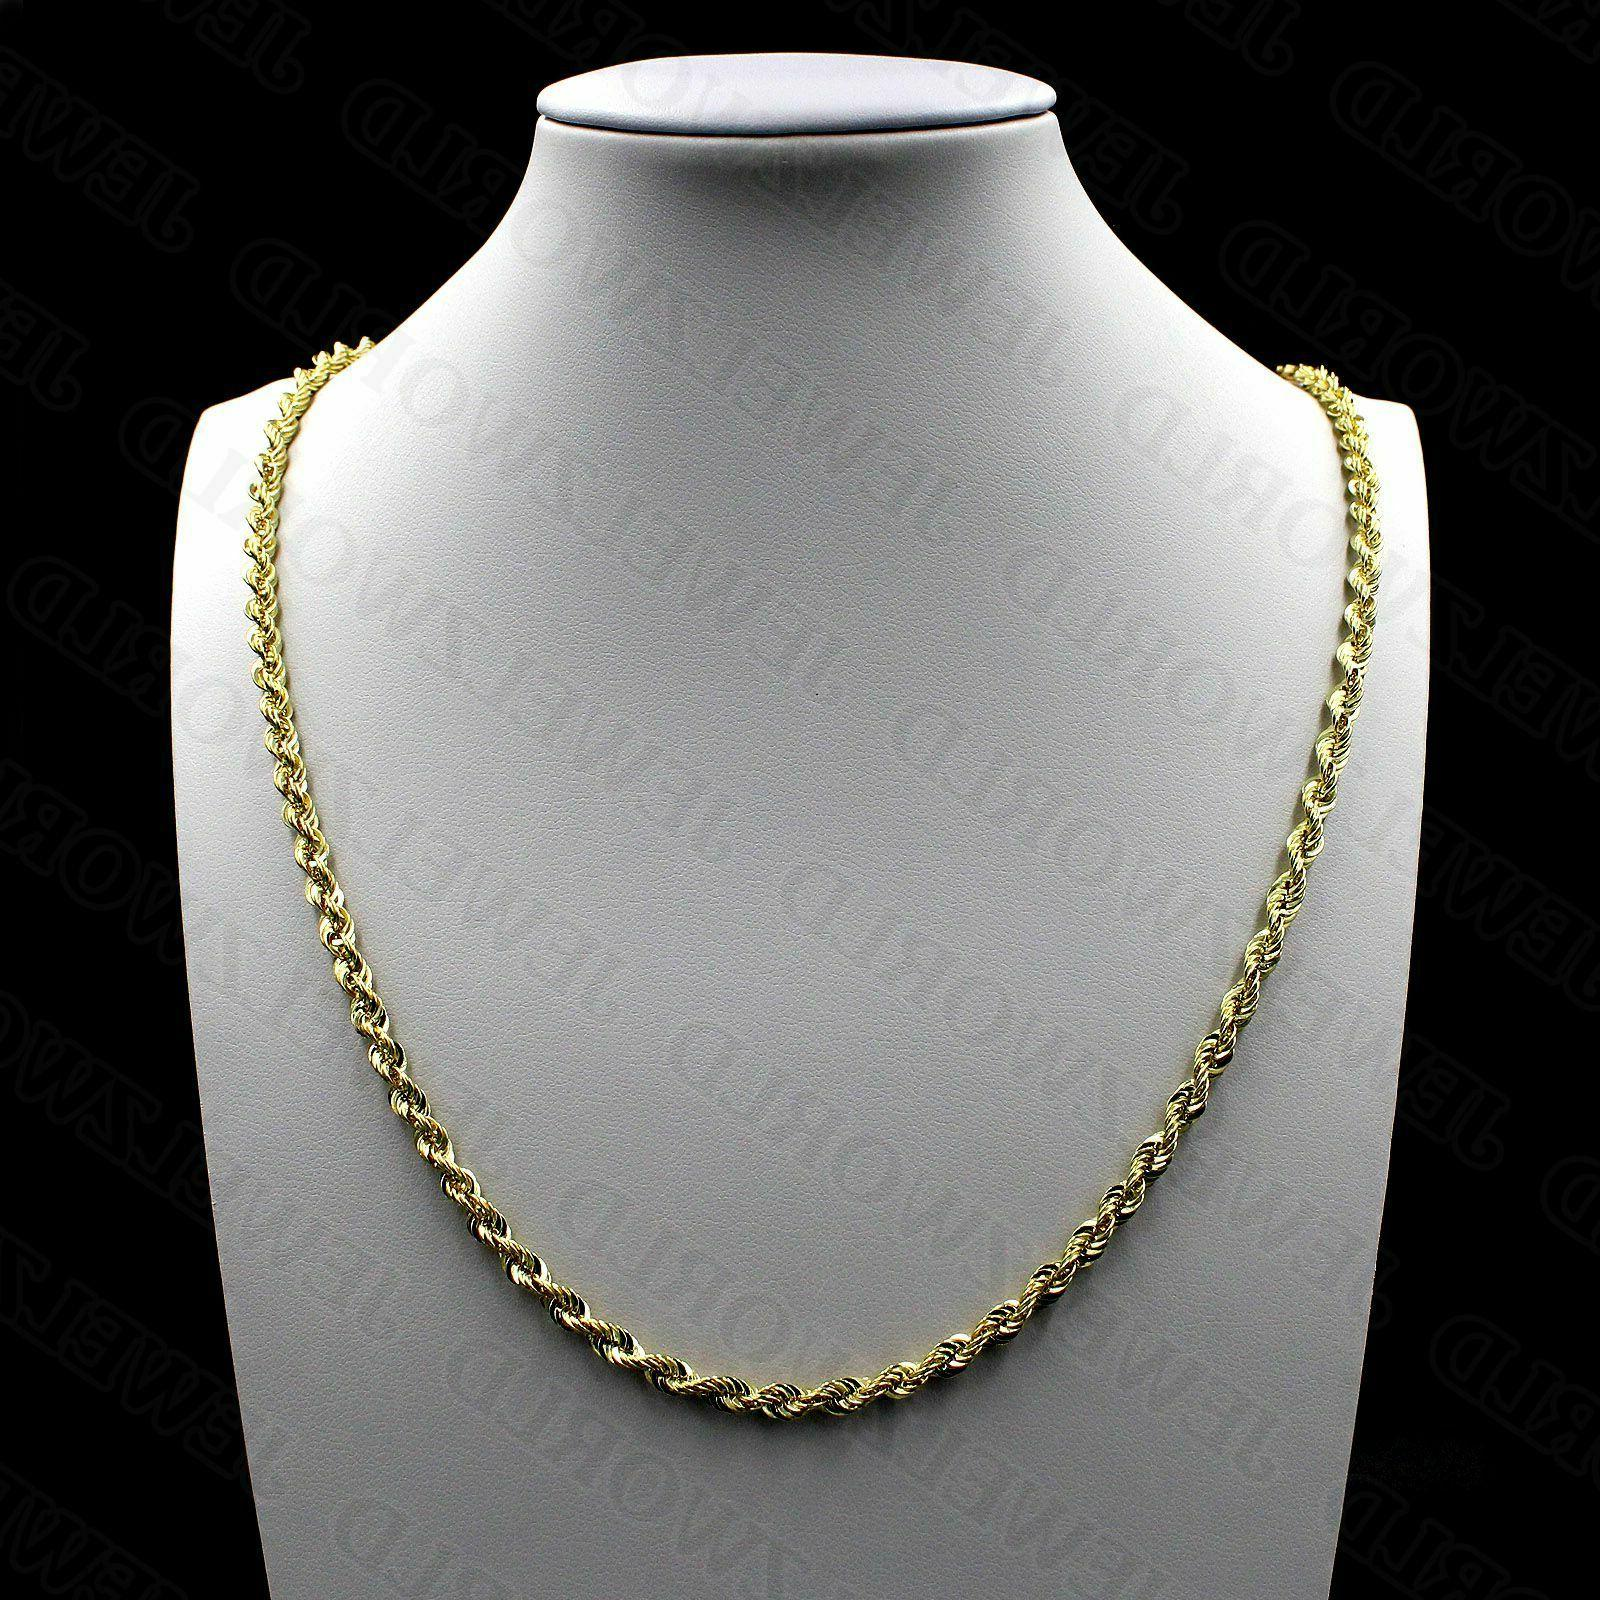 10k solid yellow gold necklace gold rope